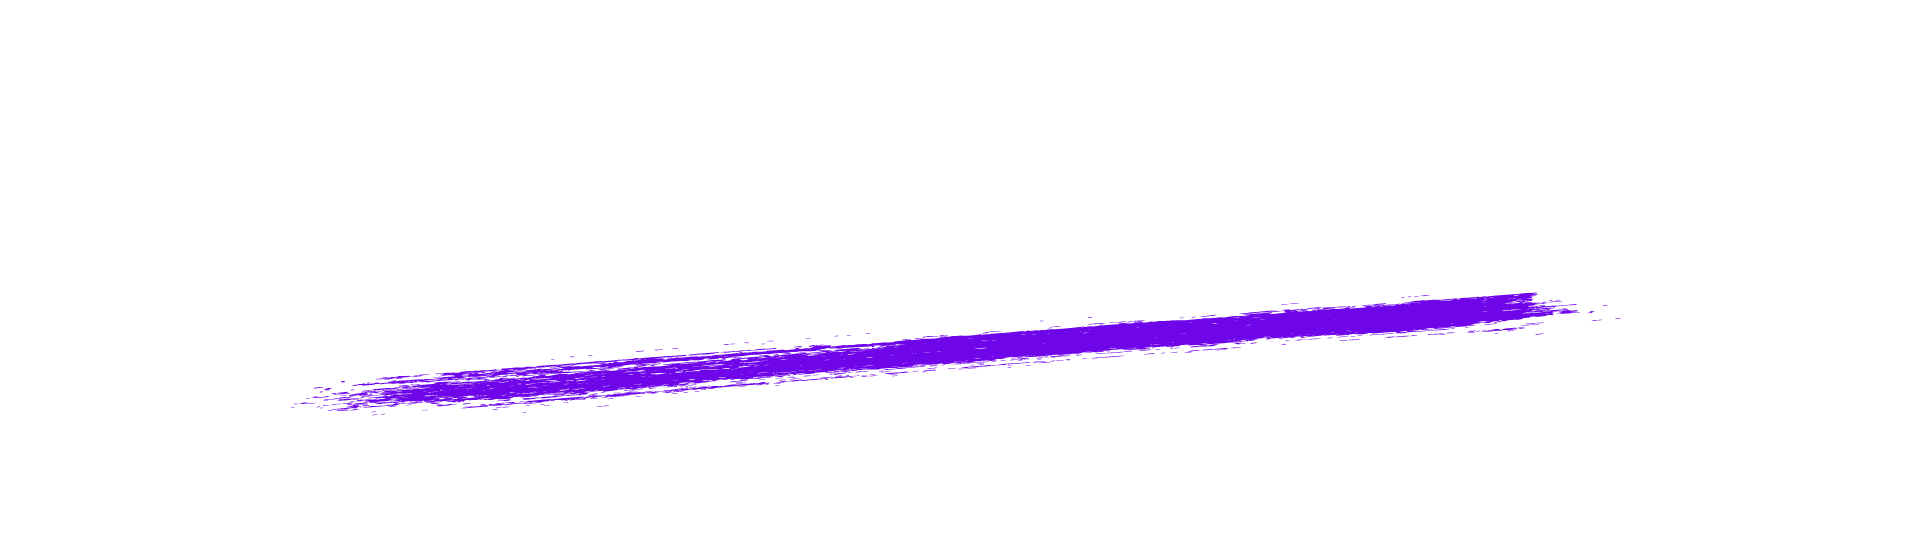 teamapp.header